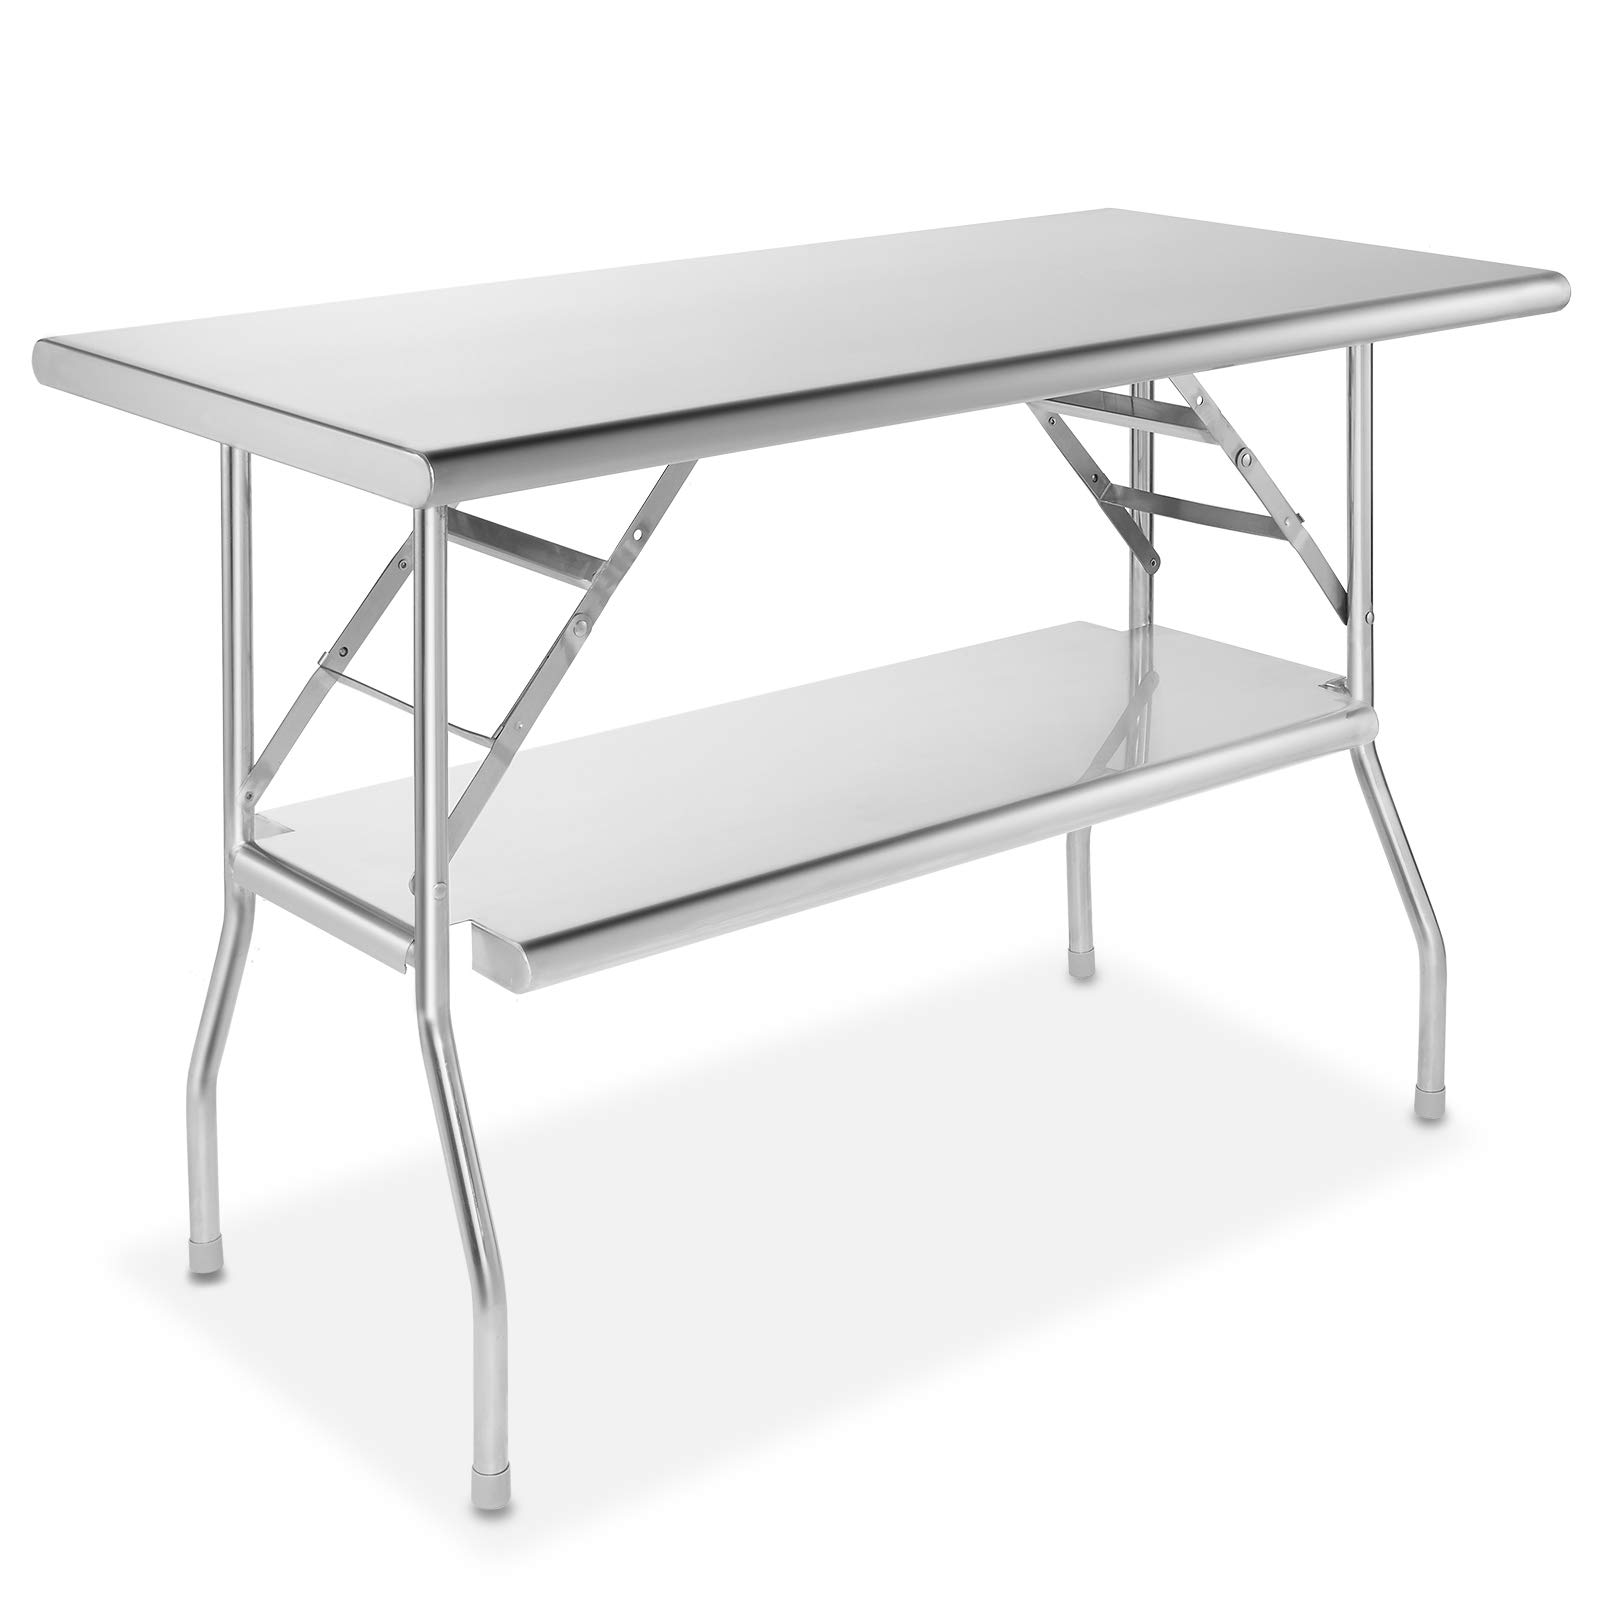 GRIDMANN Stainless Steel Folding Table 48 x 24 Inch Kitchen Prep & Work Table with Undershelf